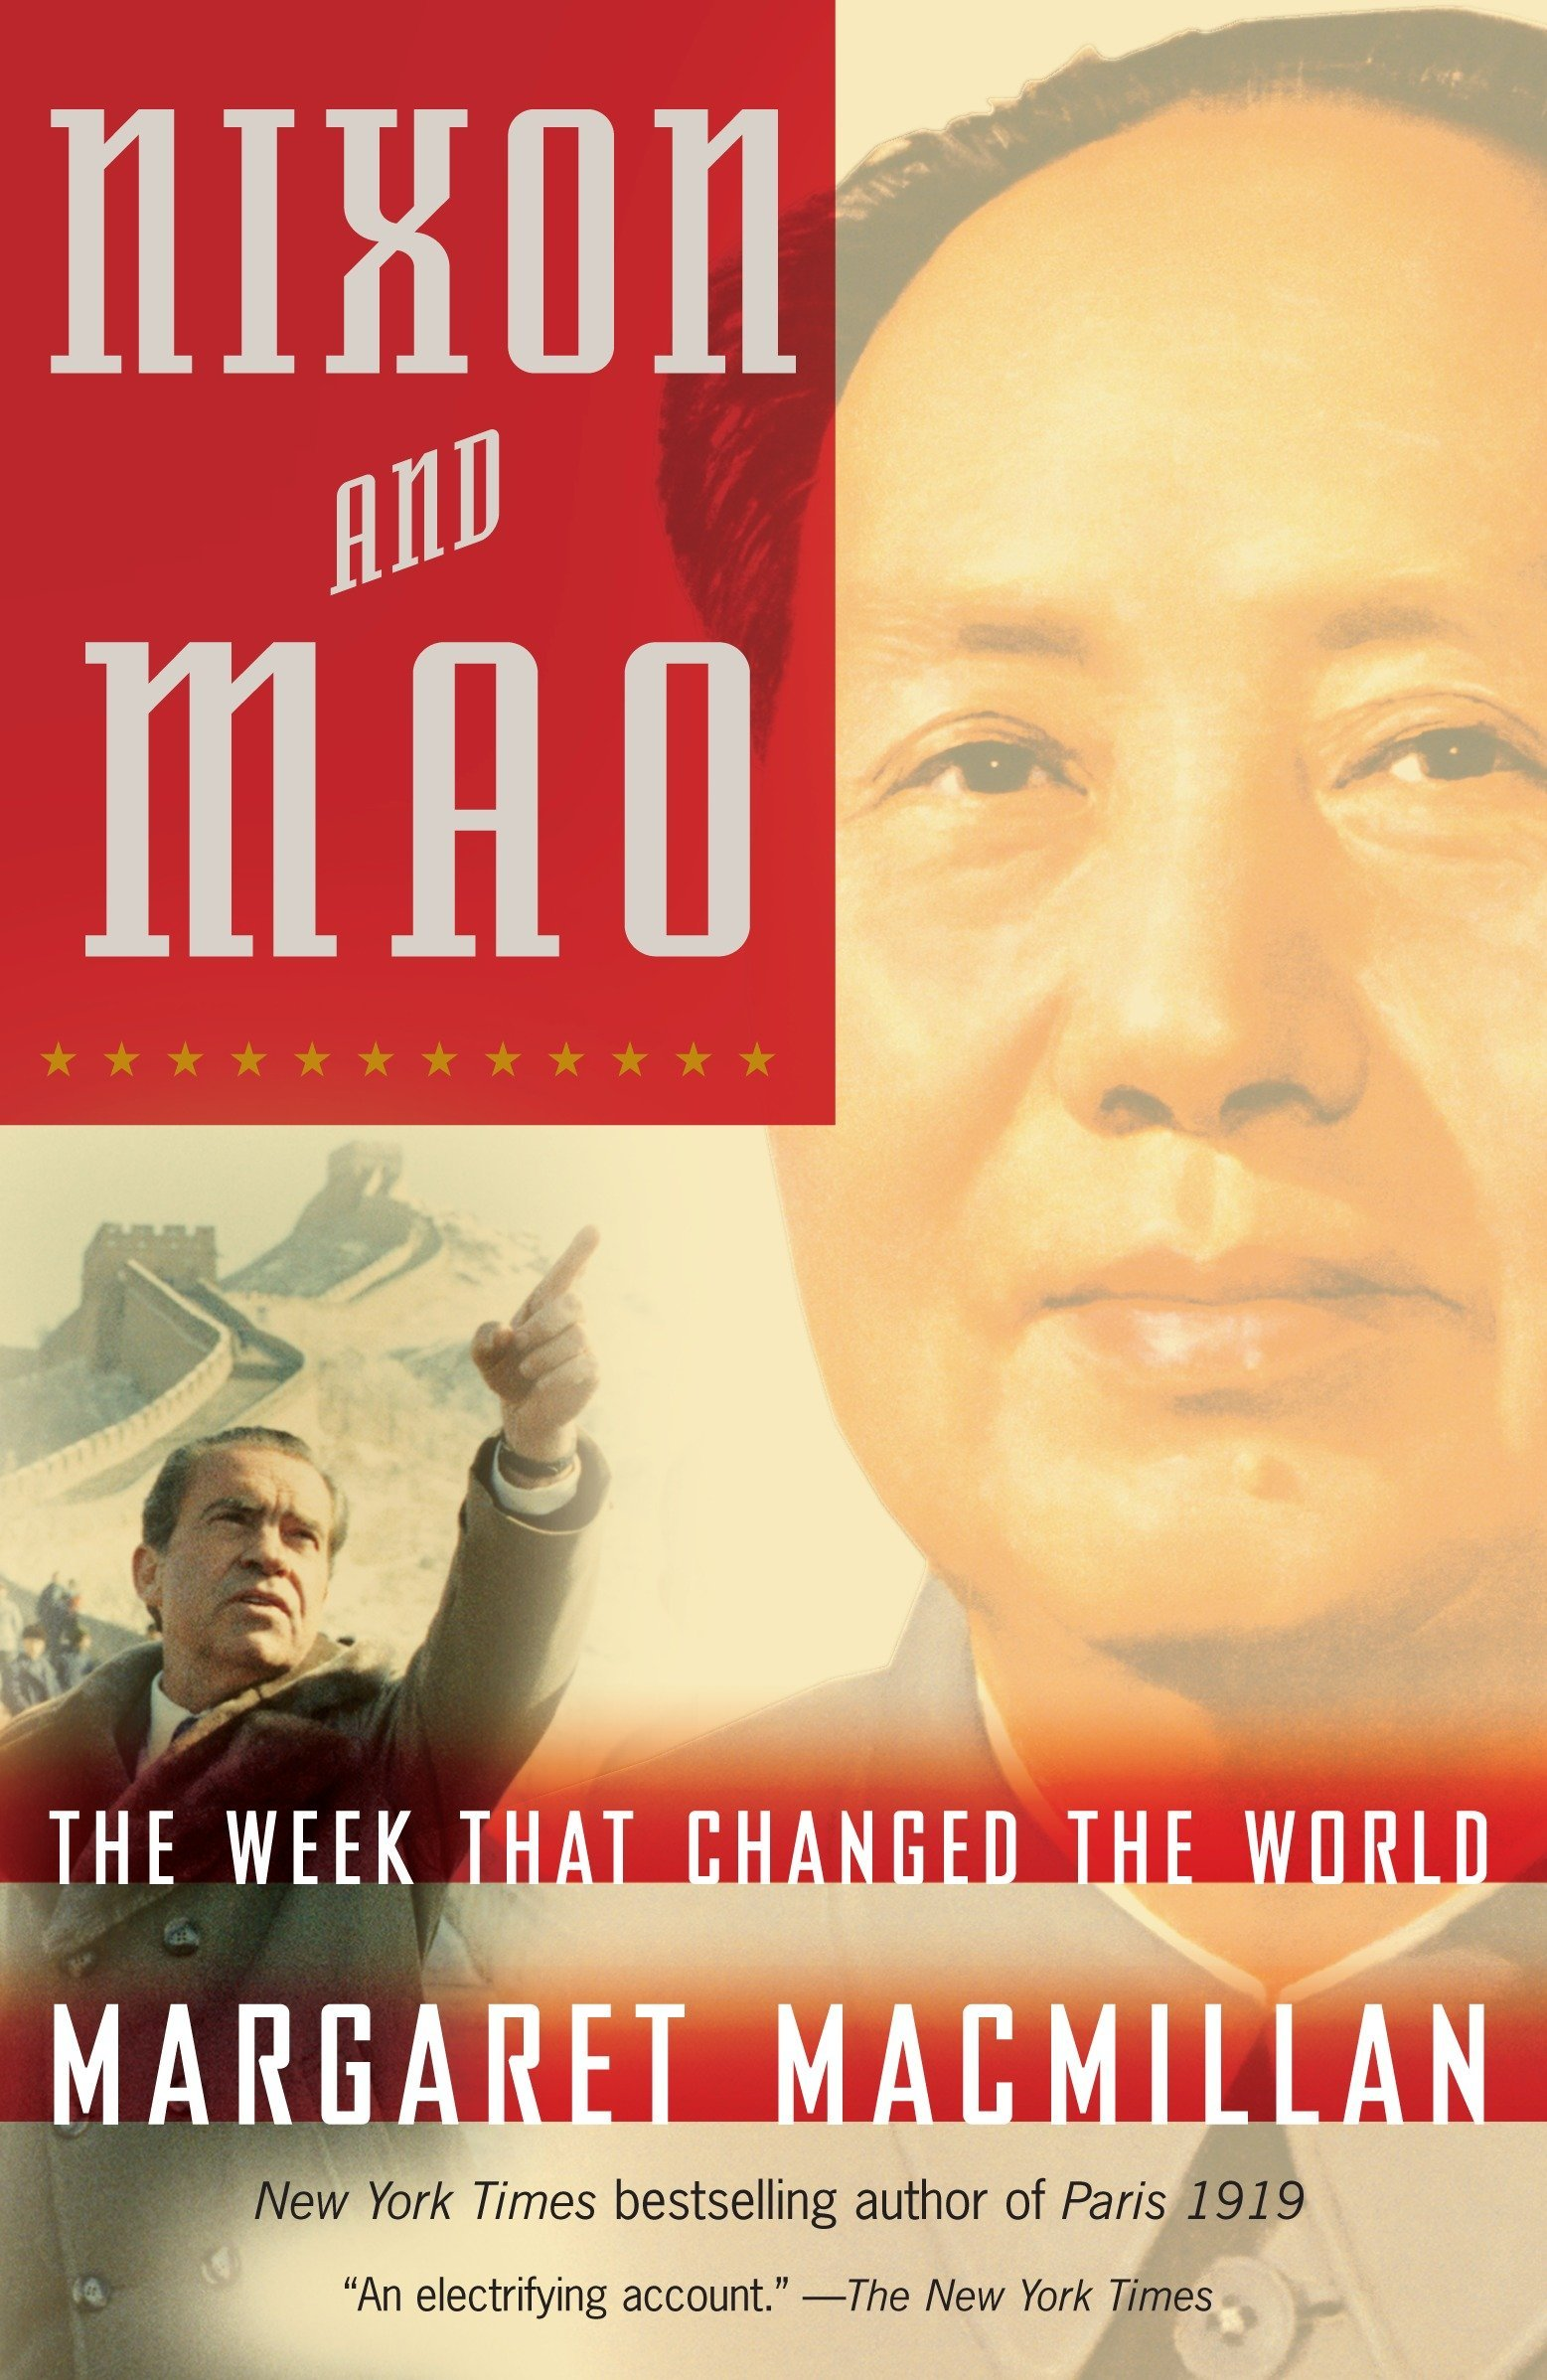 Mao Baby Music Cellular Phone Nixon And The Week That Changed World Margaret Macmillan Books